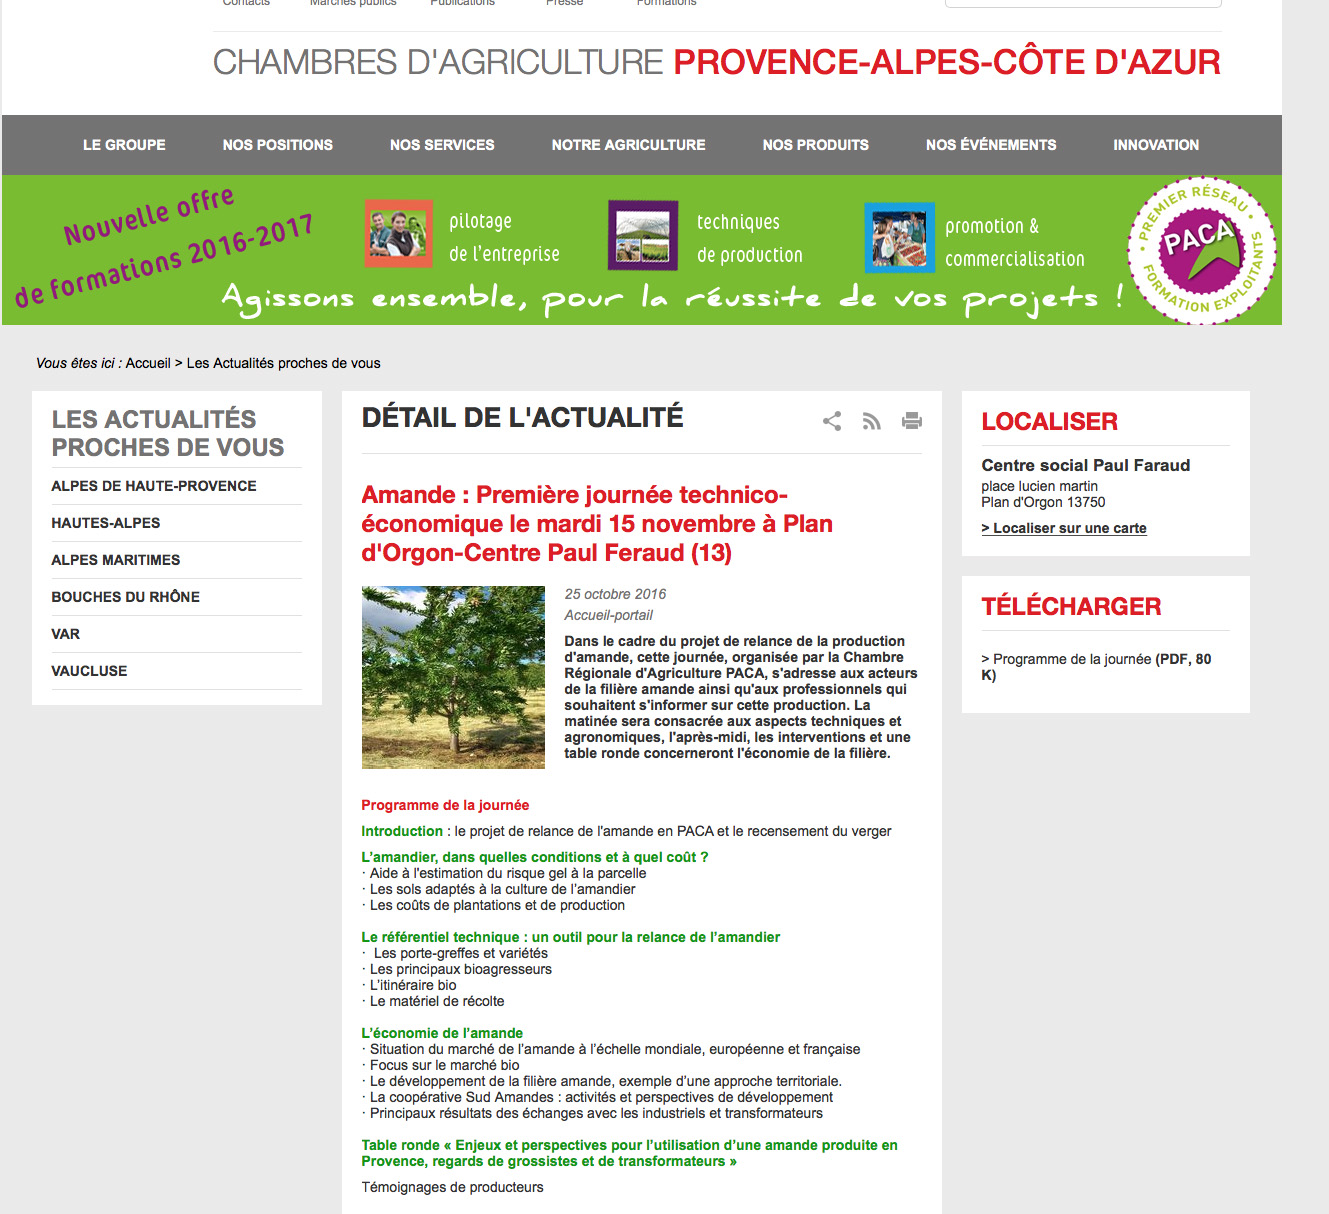 subventions agricoles france